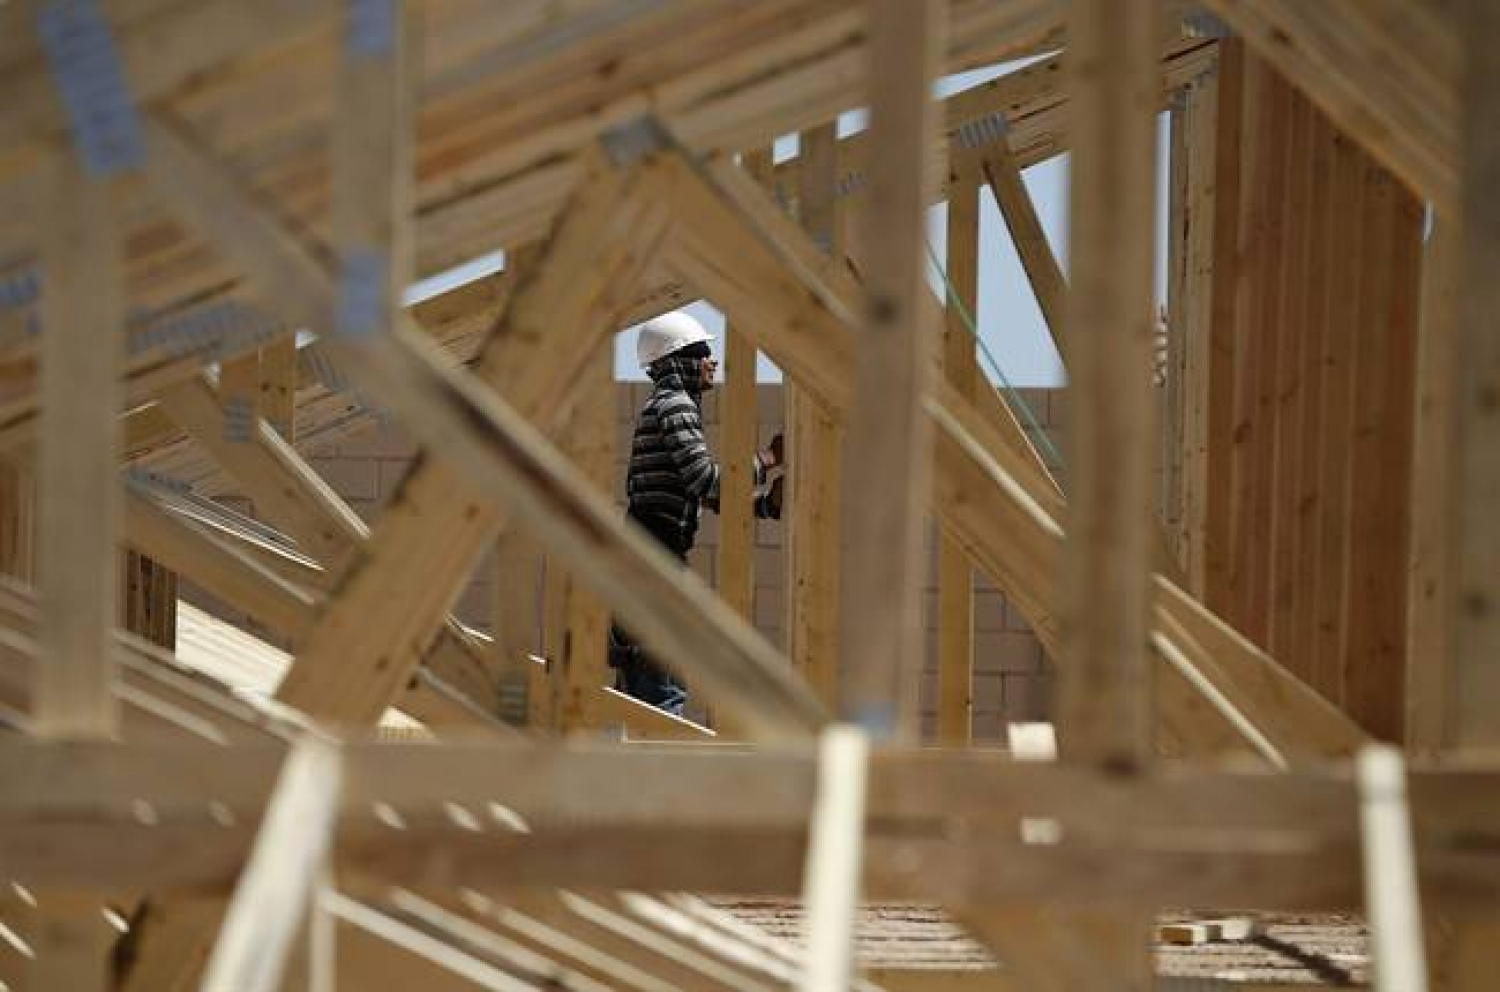 3,500 new construction workers needed in Sask. in next decade: BuildForce Canada